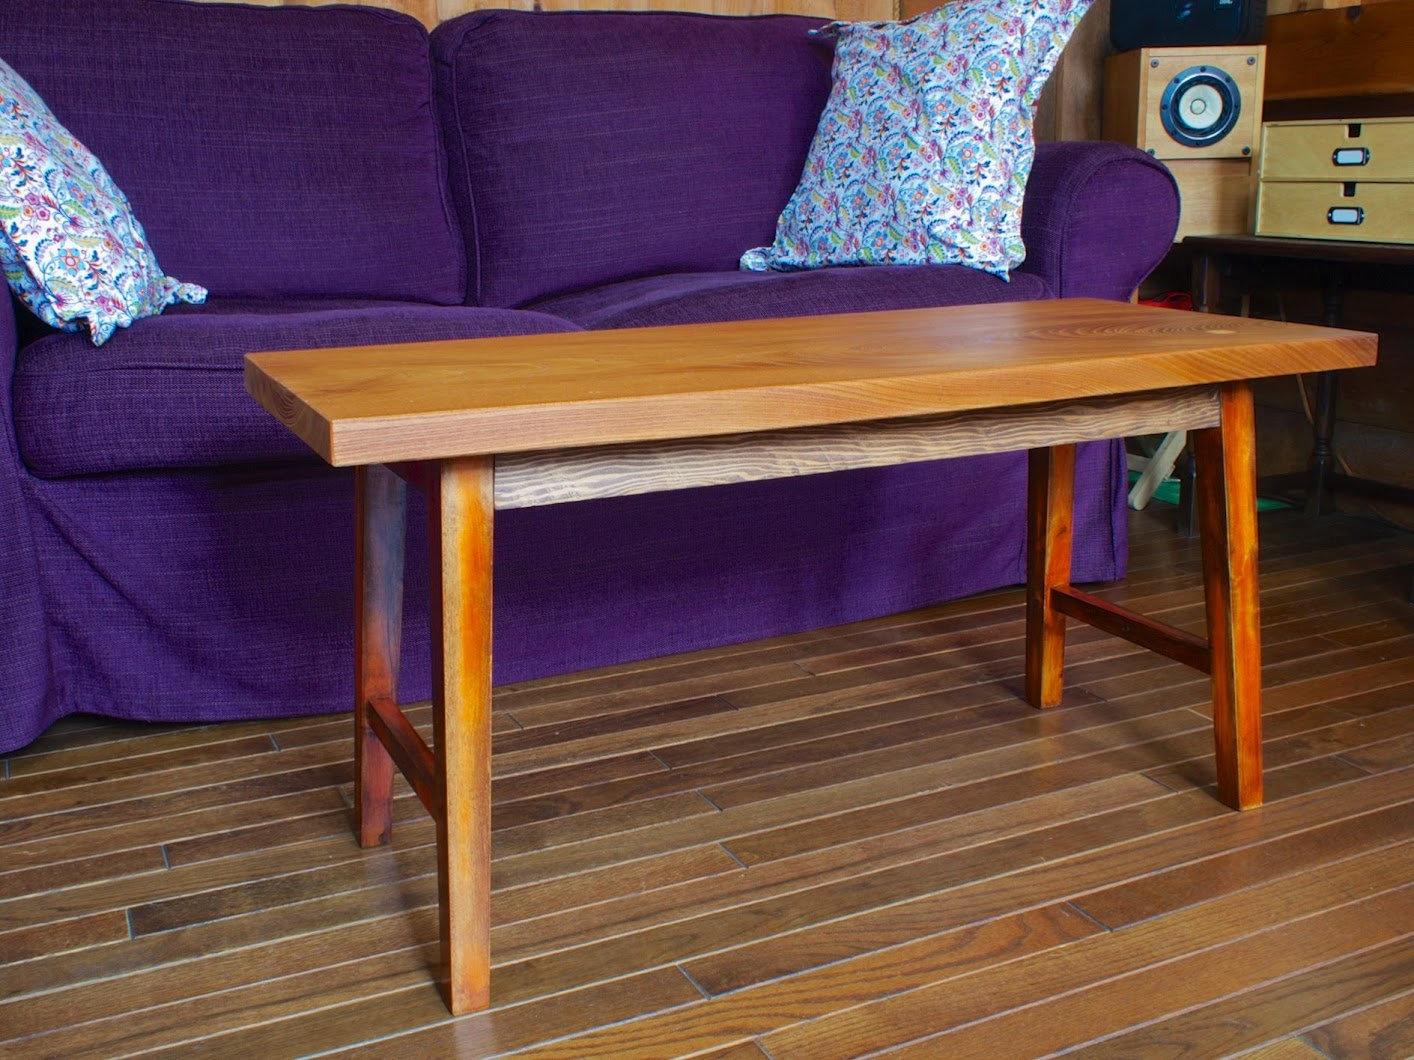 Ikea Hacked Zelkova Coffee Table